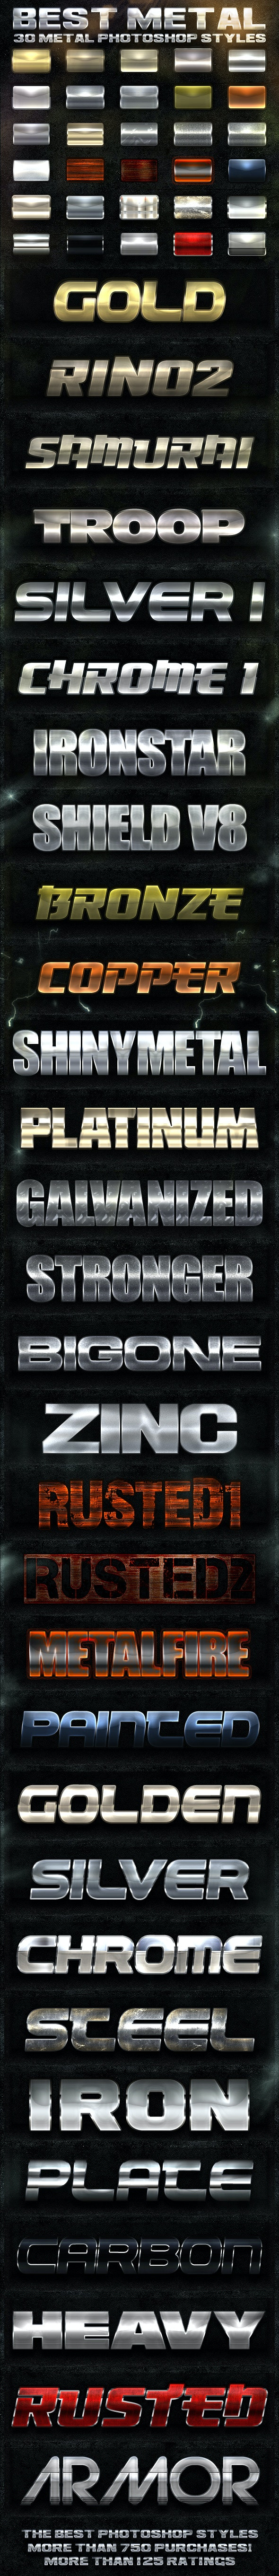 30 Metal Photoshop Styles [Bundle] - Text Effects Styles